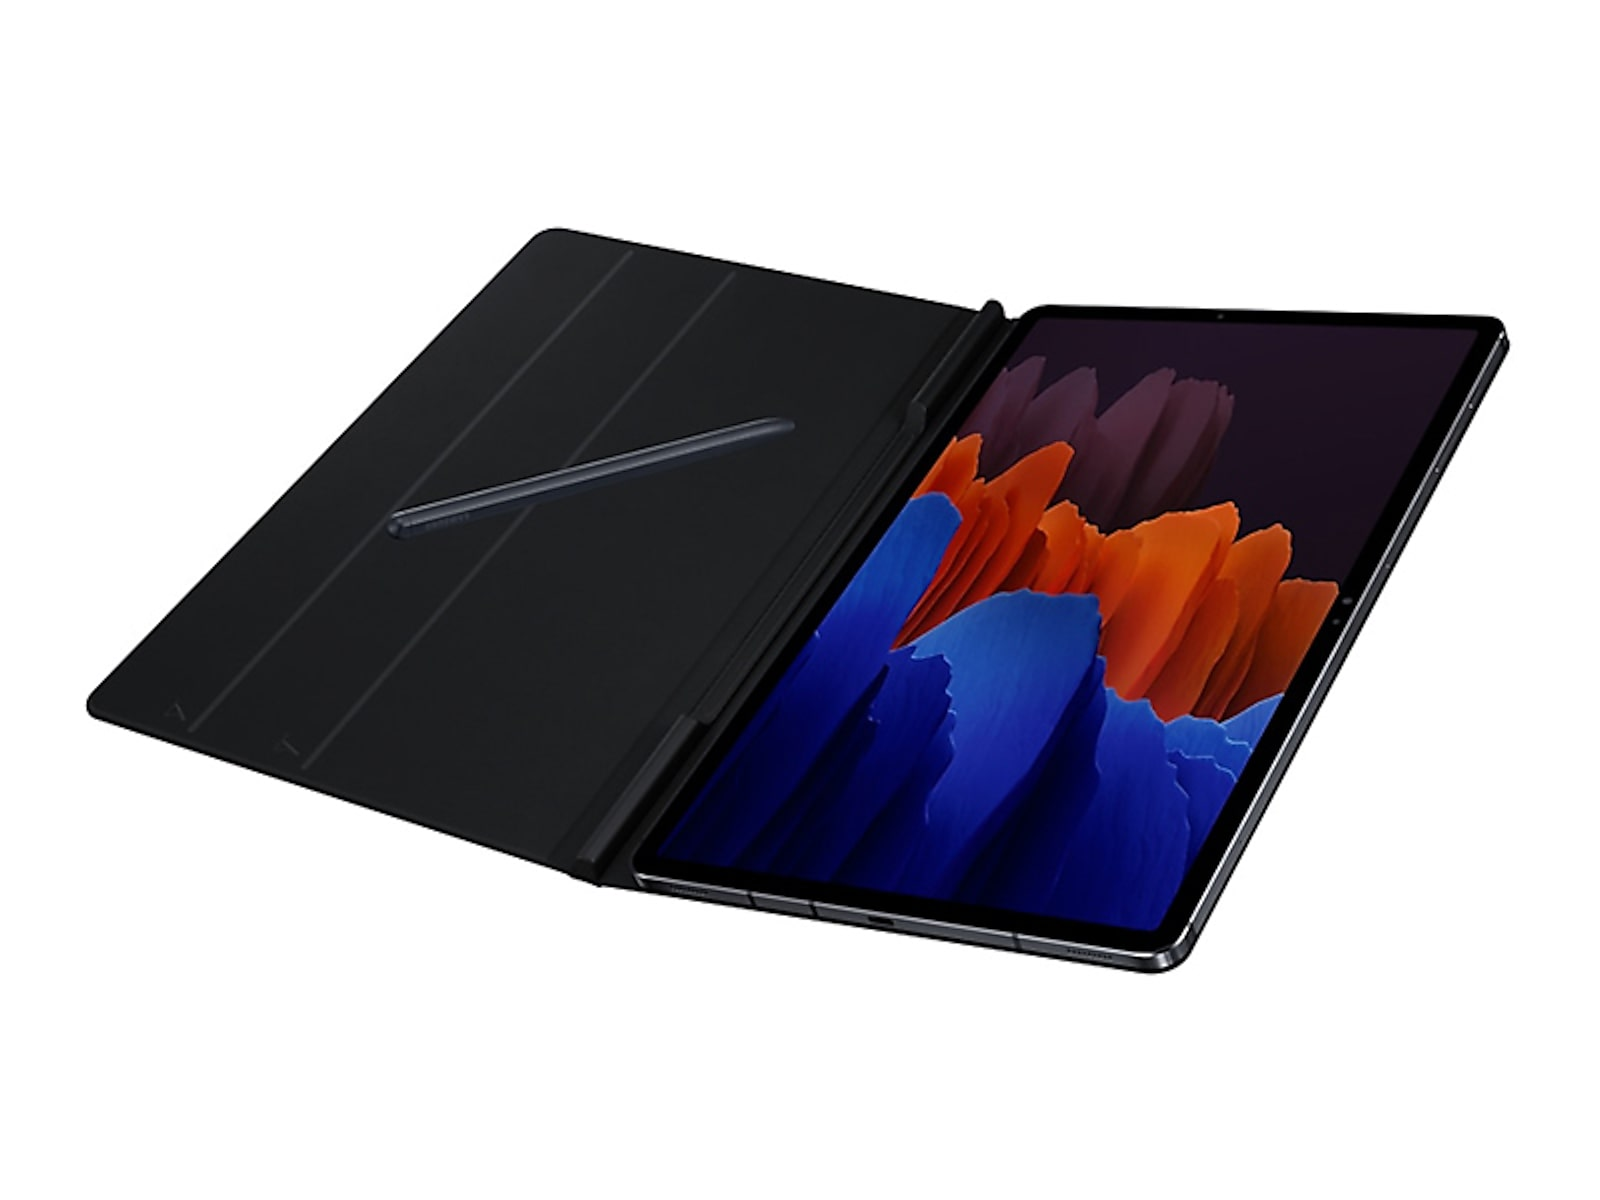 Samsung coupon: Samsung Galaxy Tab S7+ Bookcover - Mystic in Black